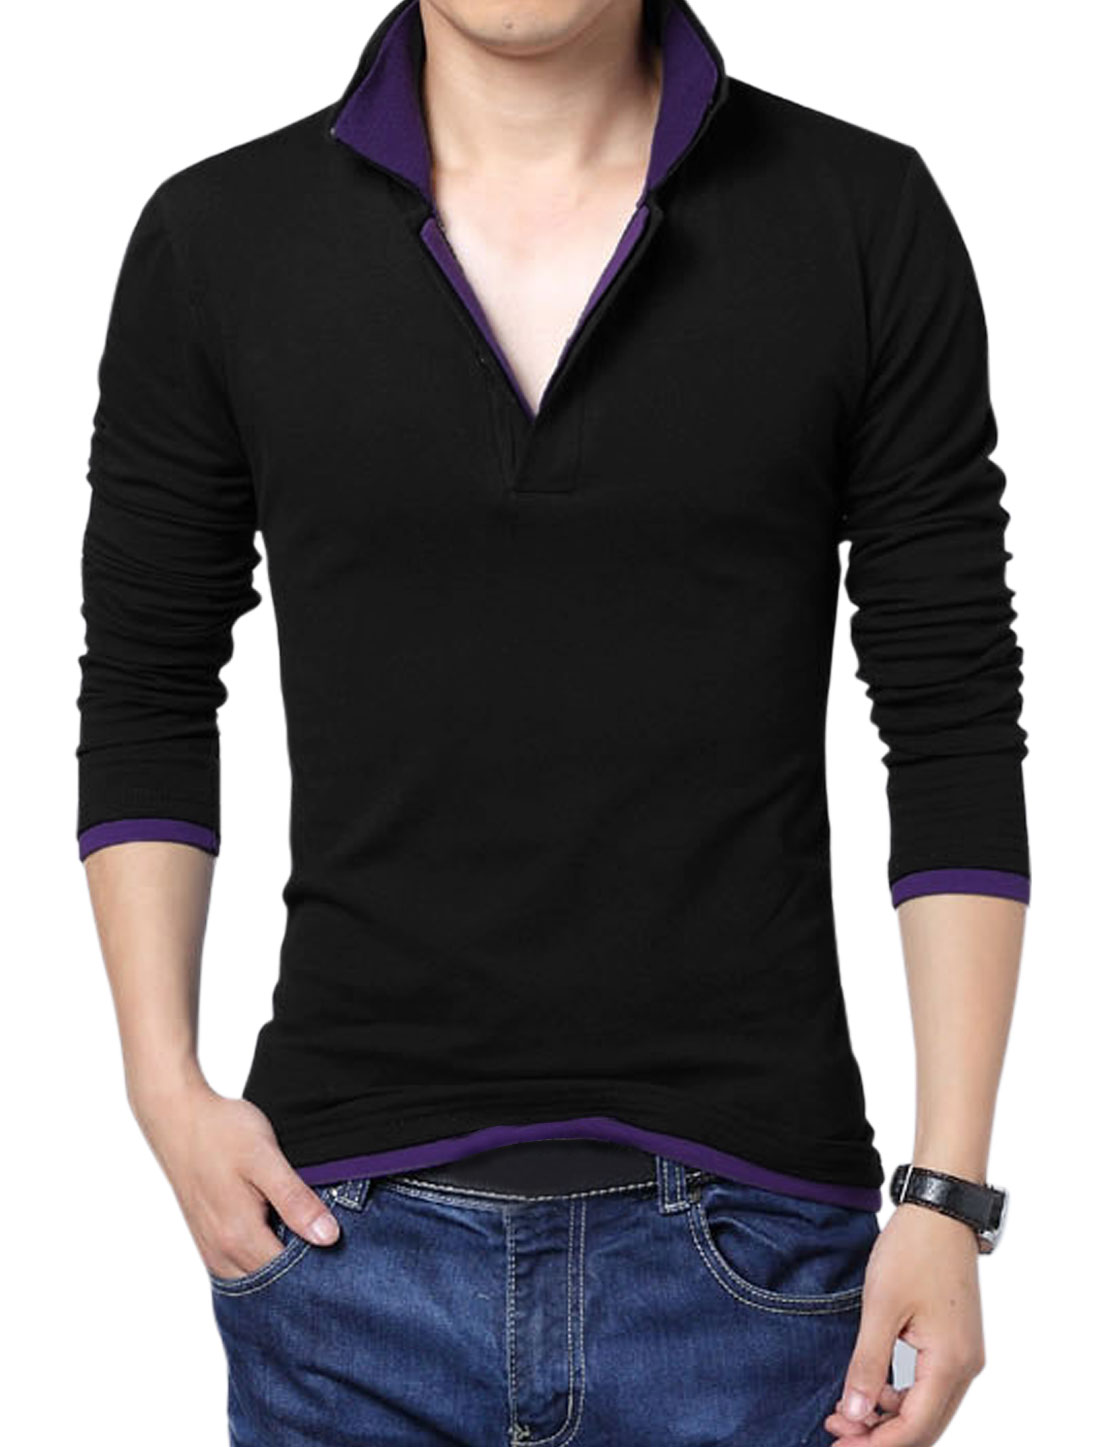 Men Easy Wear Layered Point Collar Long Sleeve Polo Shirt Black Purple L